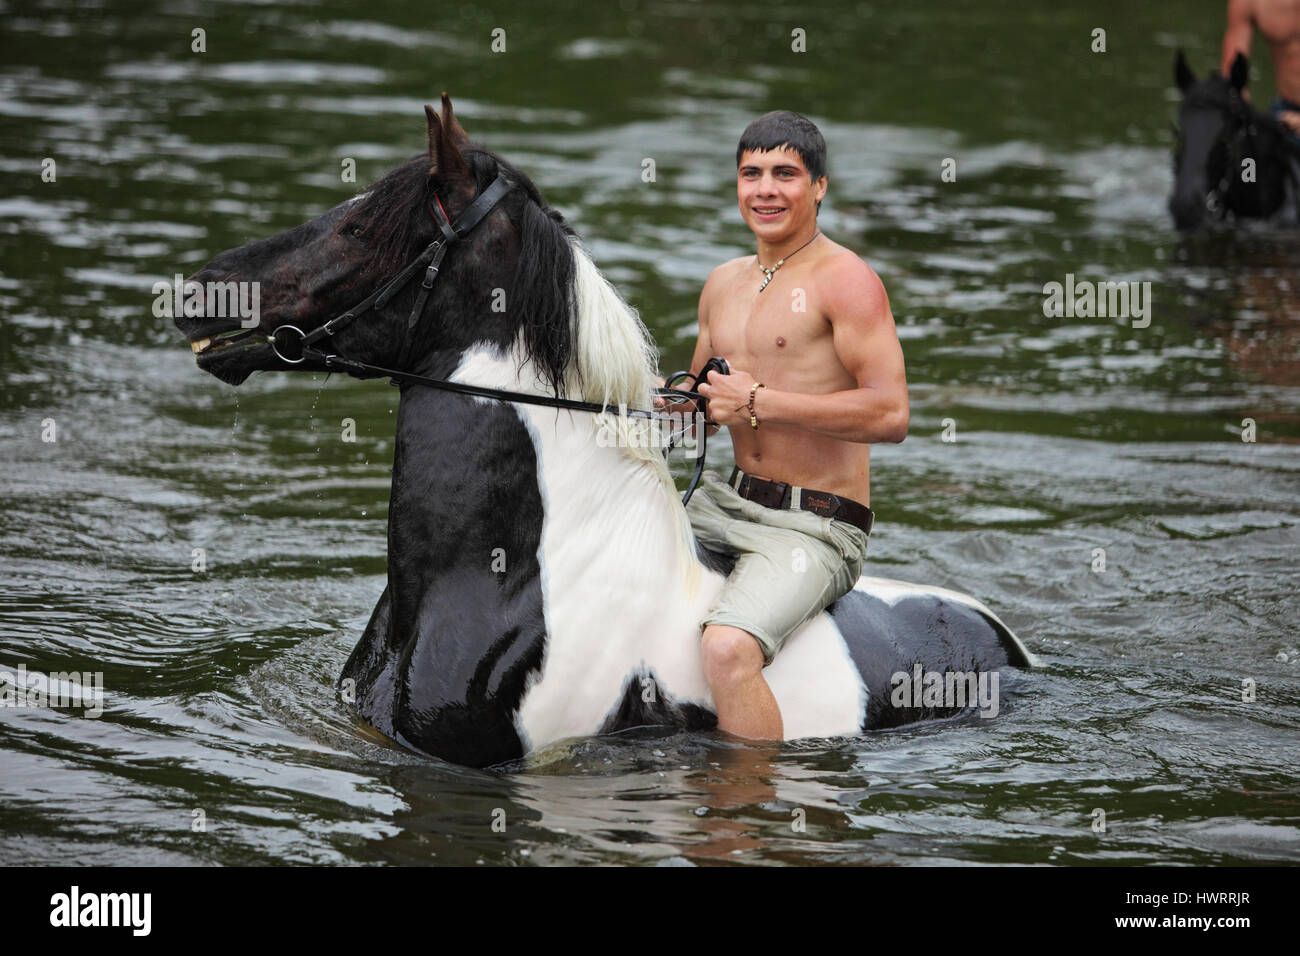 Young man astride horse go down the river - Stock Image